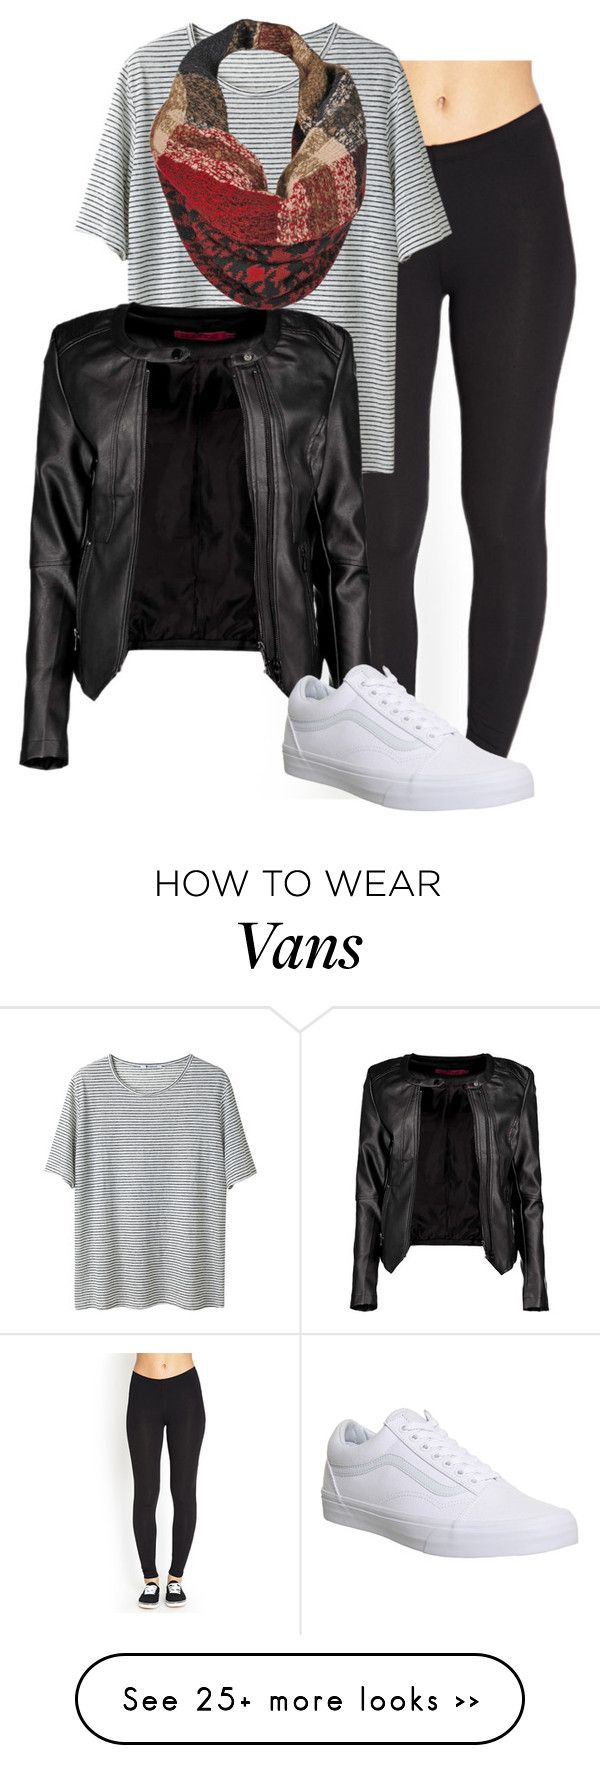 """You wanna go to heaven but you're human tonight"" by summerlove1d on Polyvore featuring Forever 21, T By Alexander Wang, Boohoo, Vans and Black Rivet"